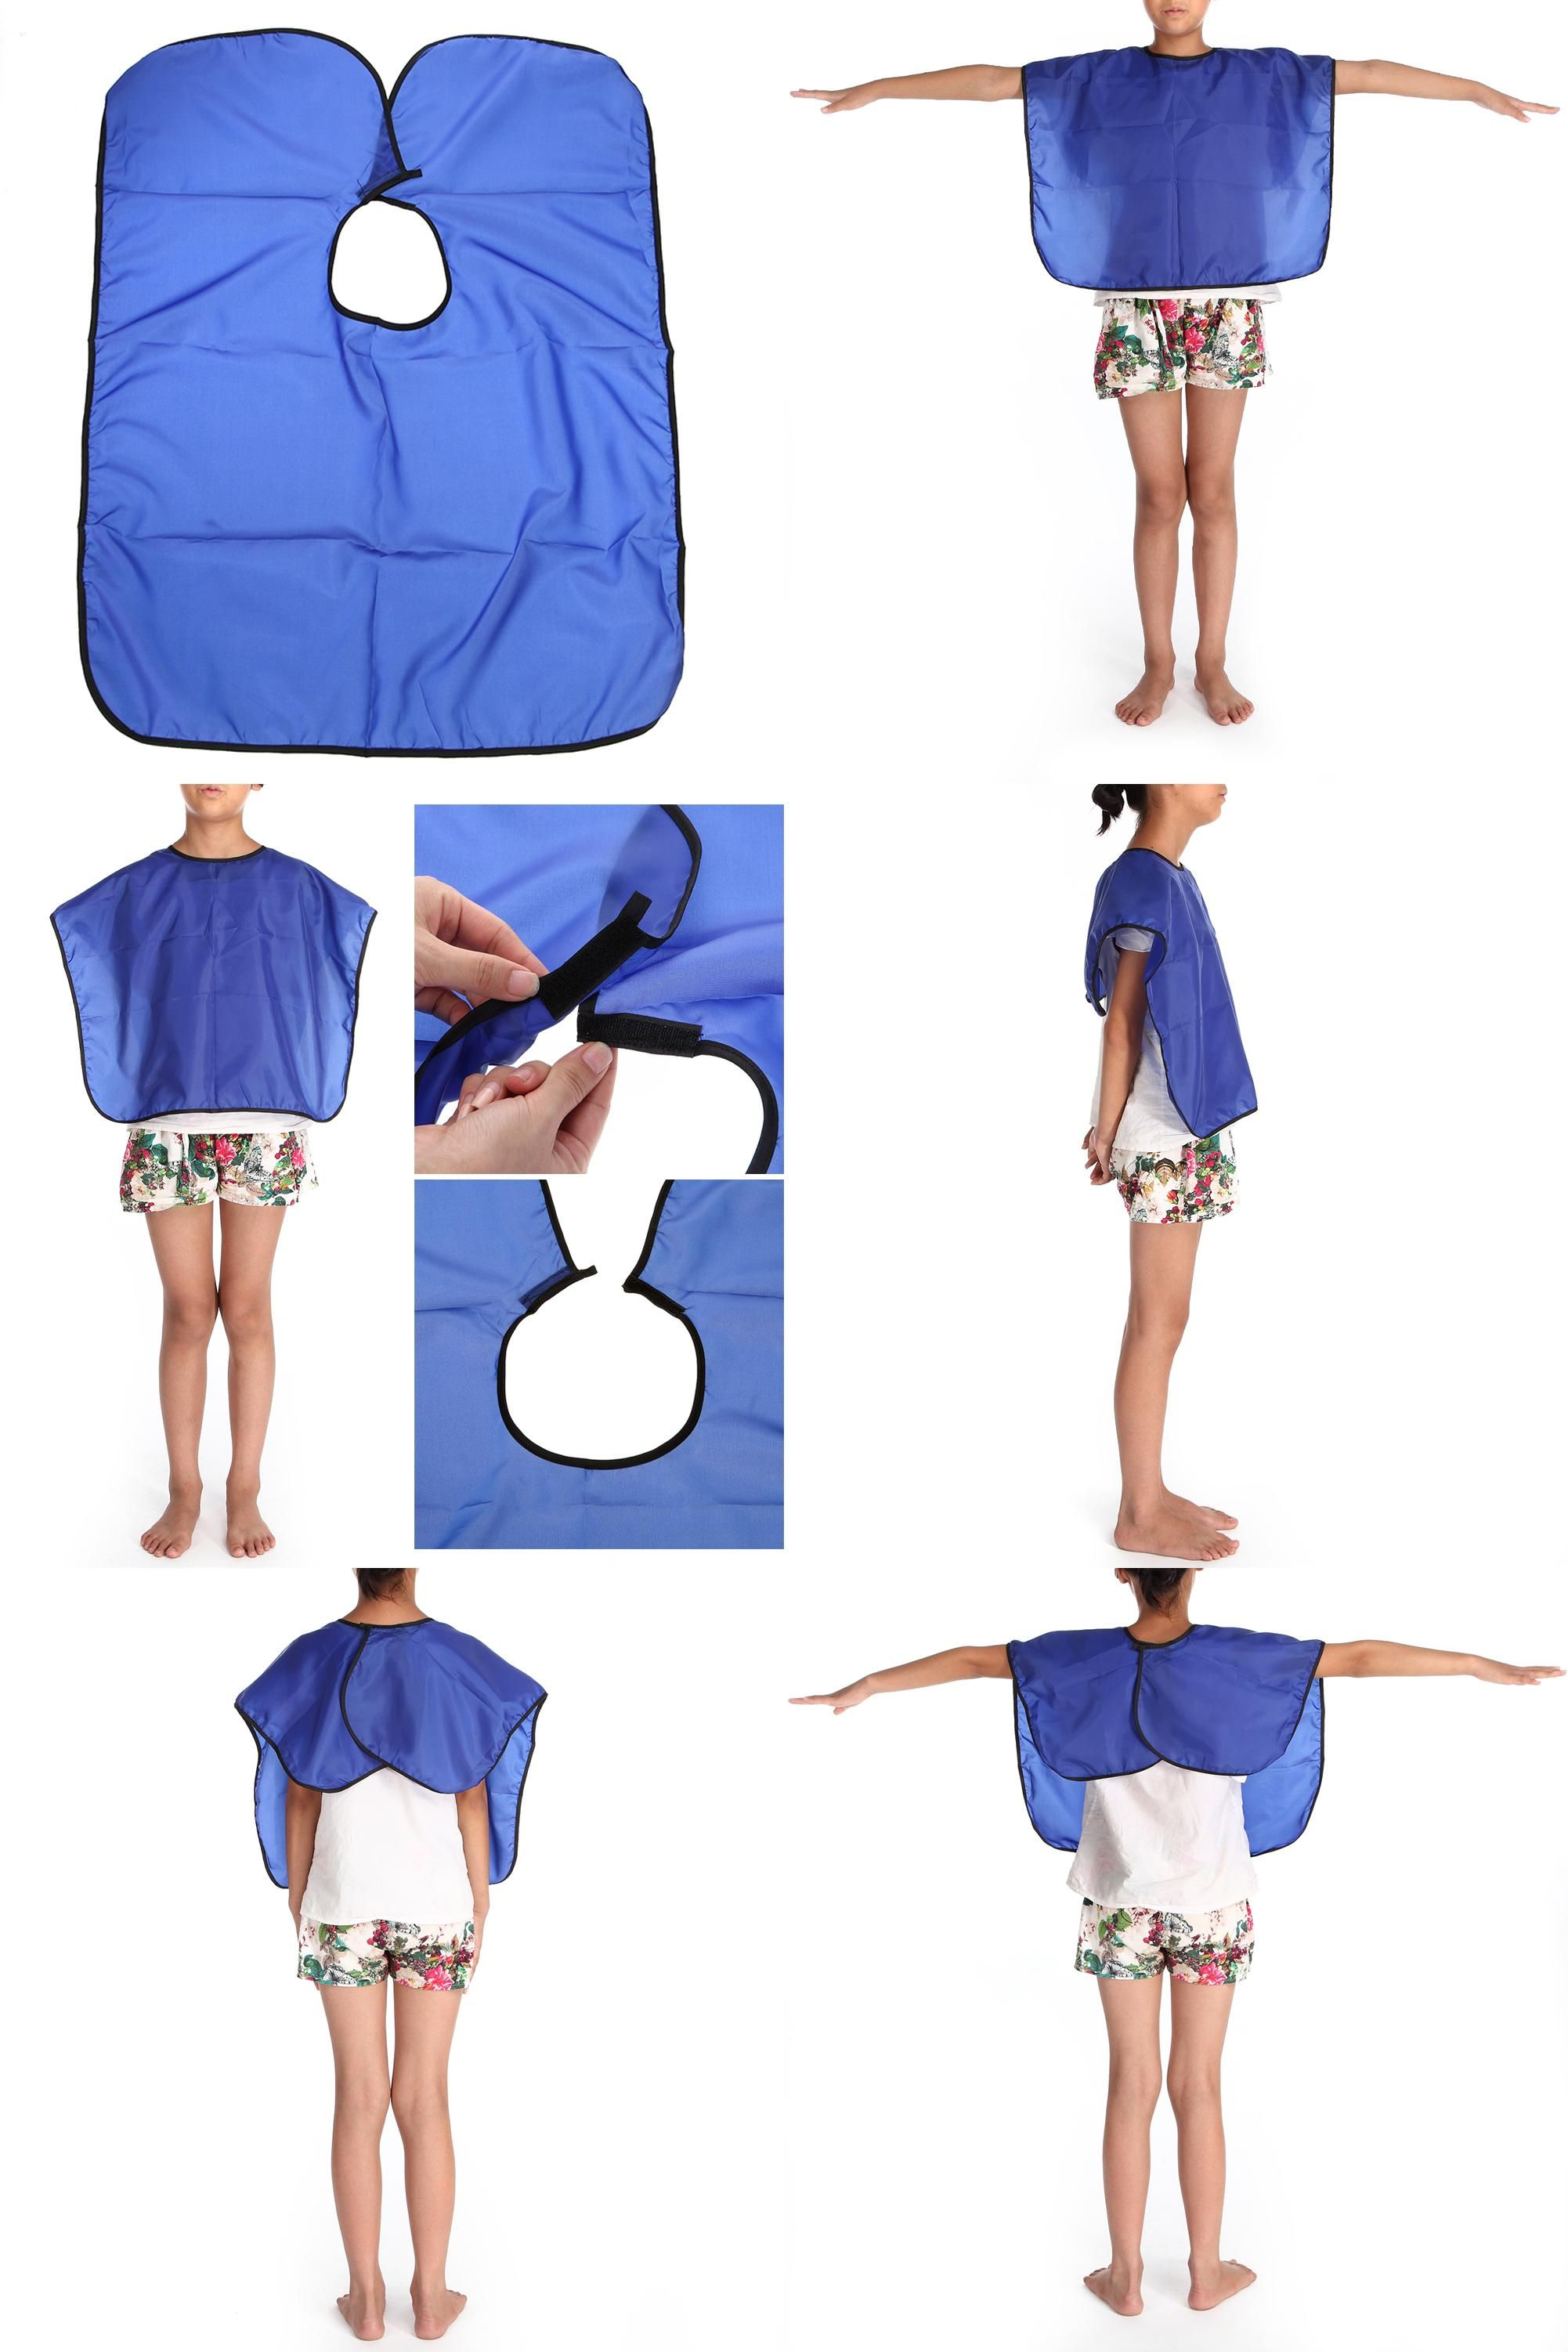 Visit to Buy Gown Hairdressing Apron Waterproof Children Adults